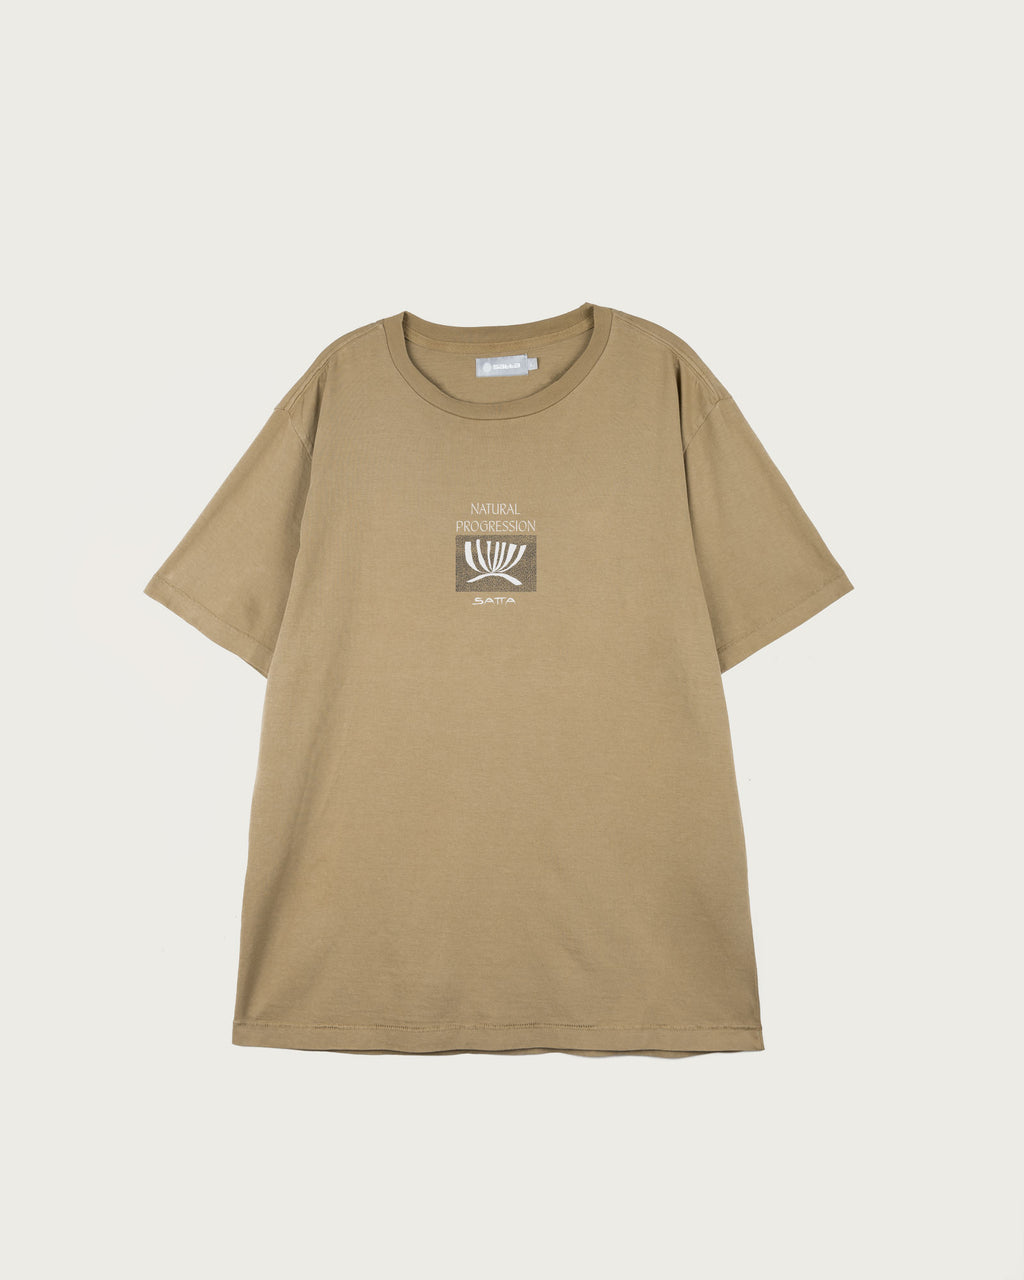 Natural Progression Tee - Bushweed - SATTA